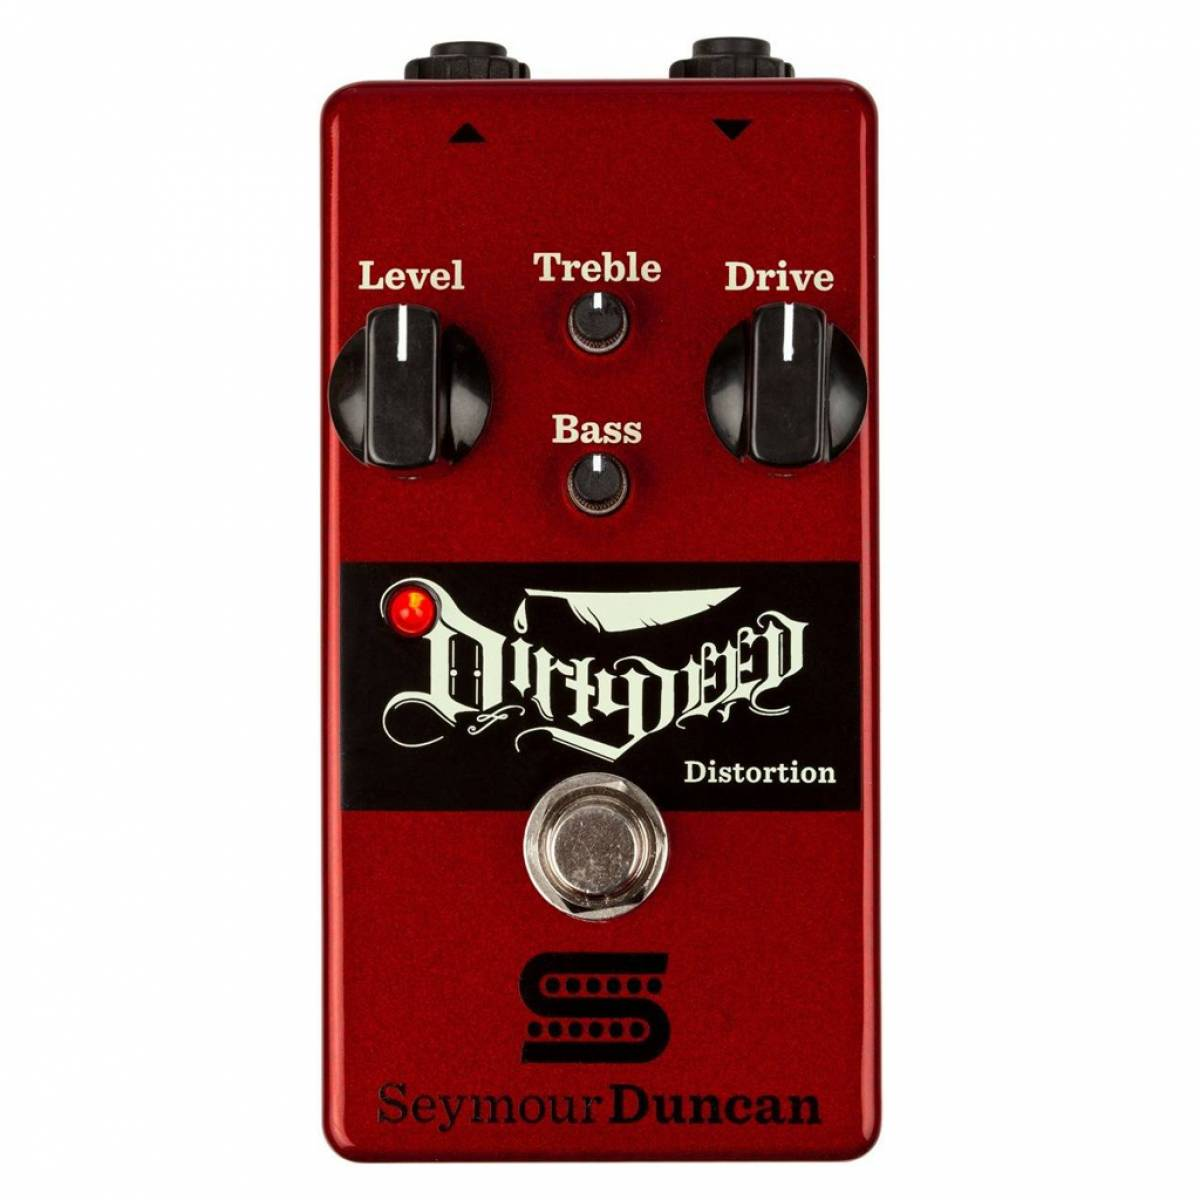 Pedal de Guitarra Seymour Duncan Dirty Deed Distortion